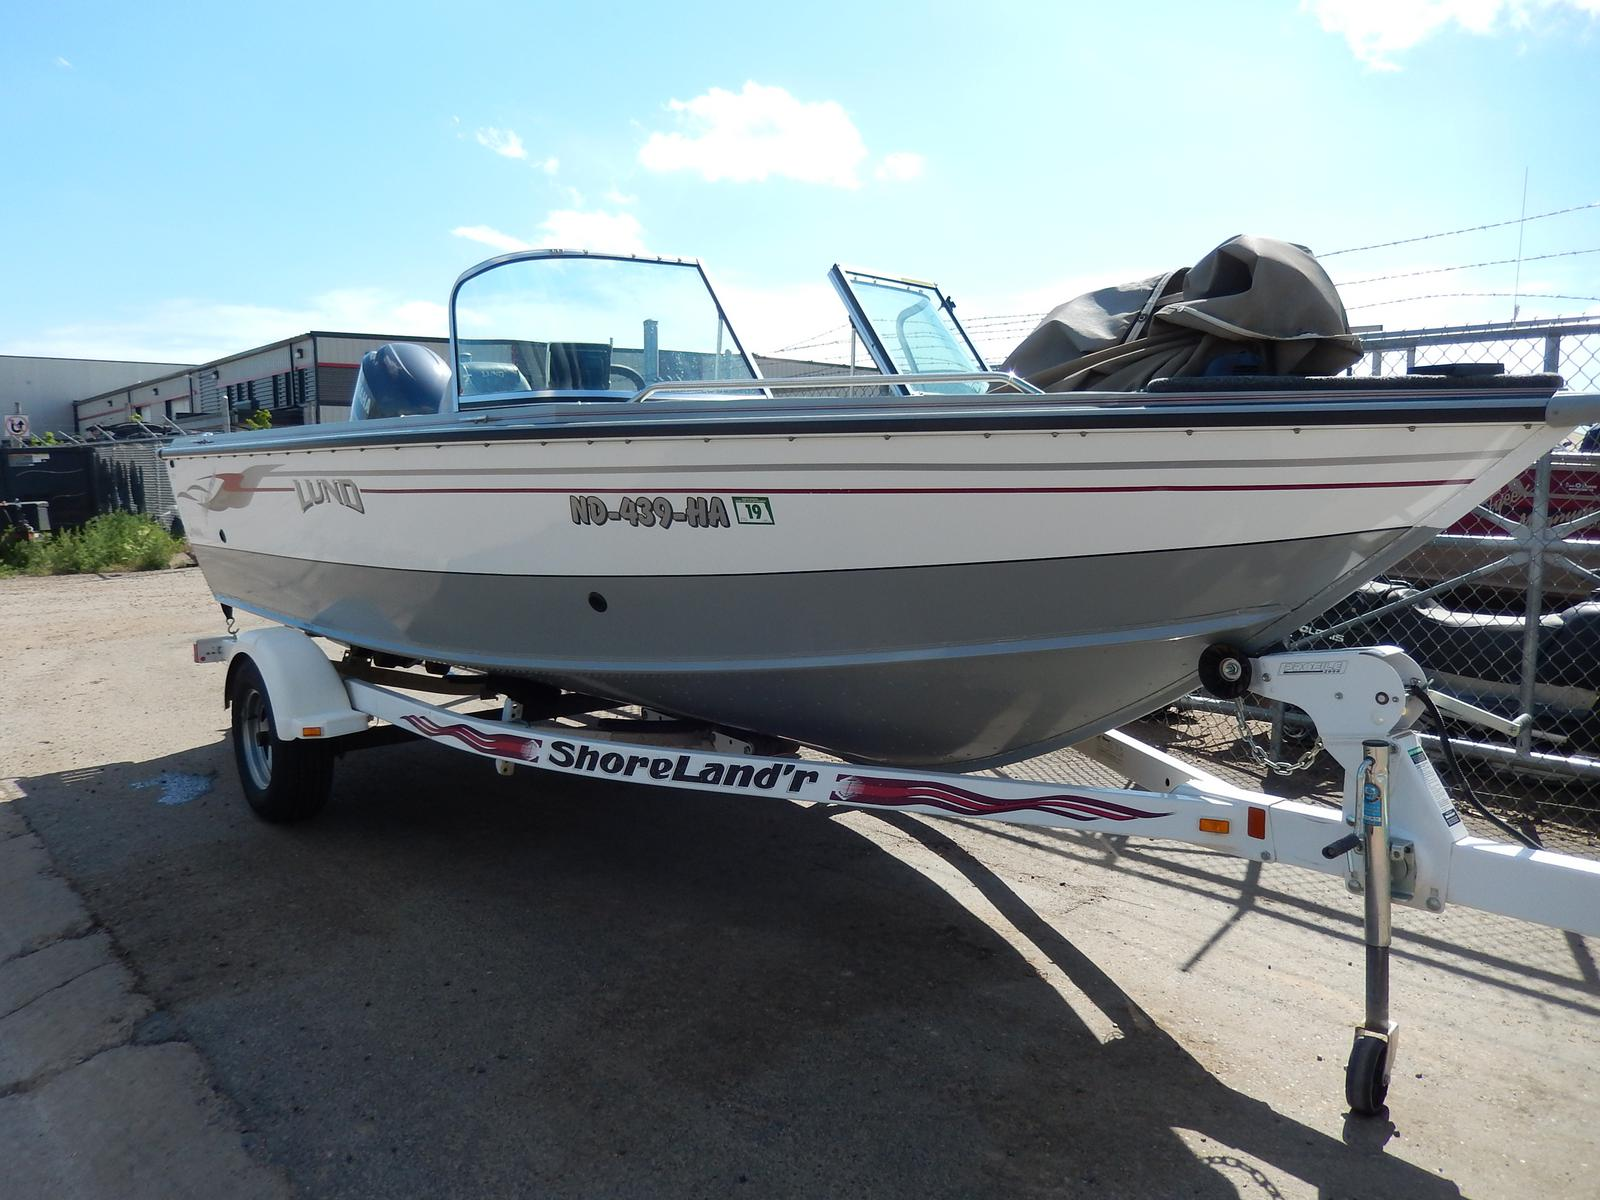 Inventory from Lund Boats DAKOTA SPORTS Dickinson, ND (701